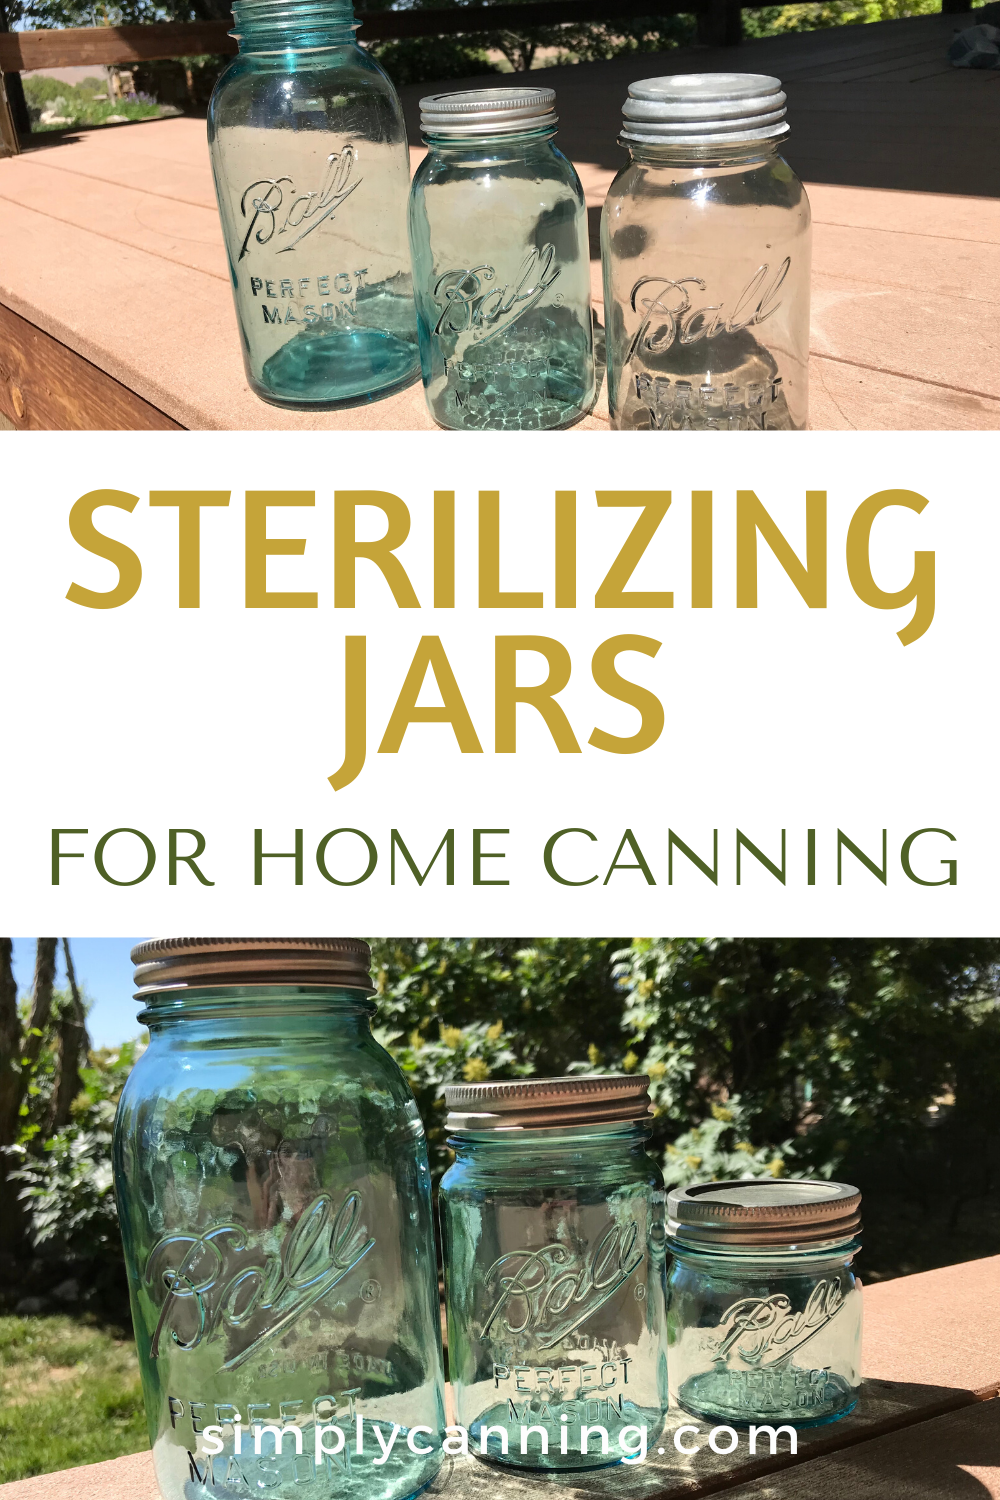 Sterilizing Jars for Home Canning What is the Scoop? in